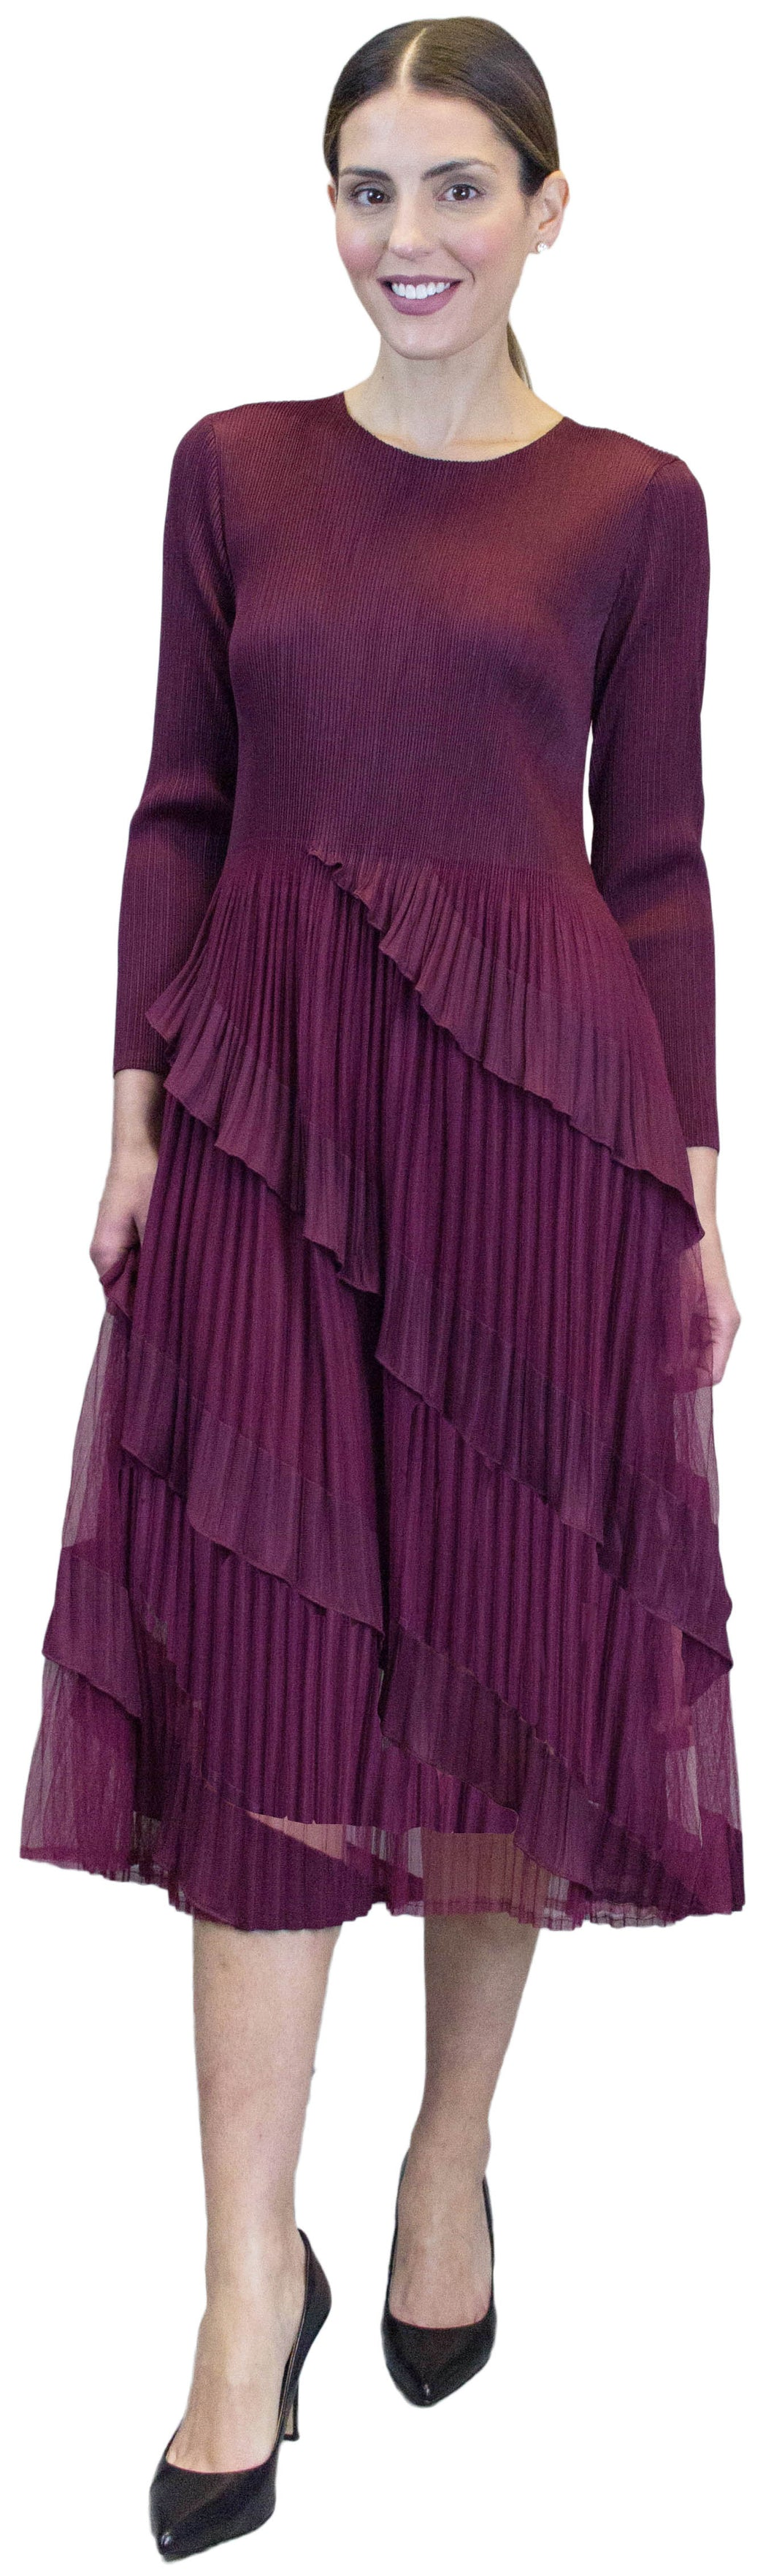 Multi Layered Dress, Burgundy